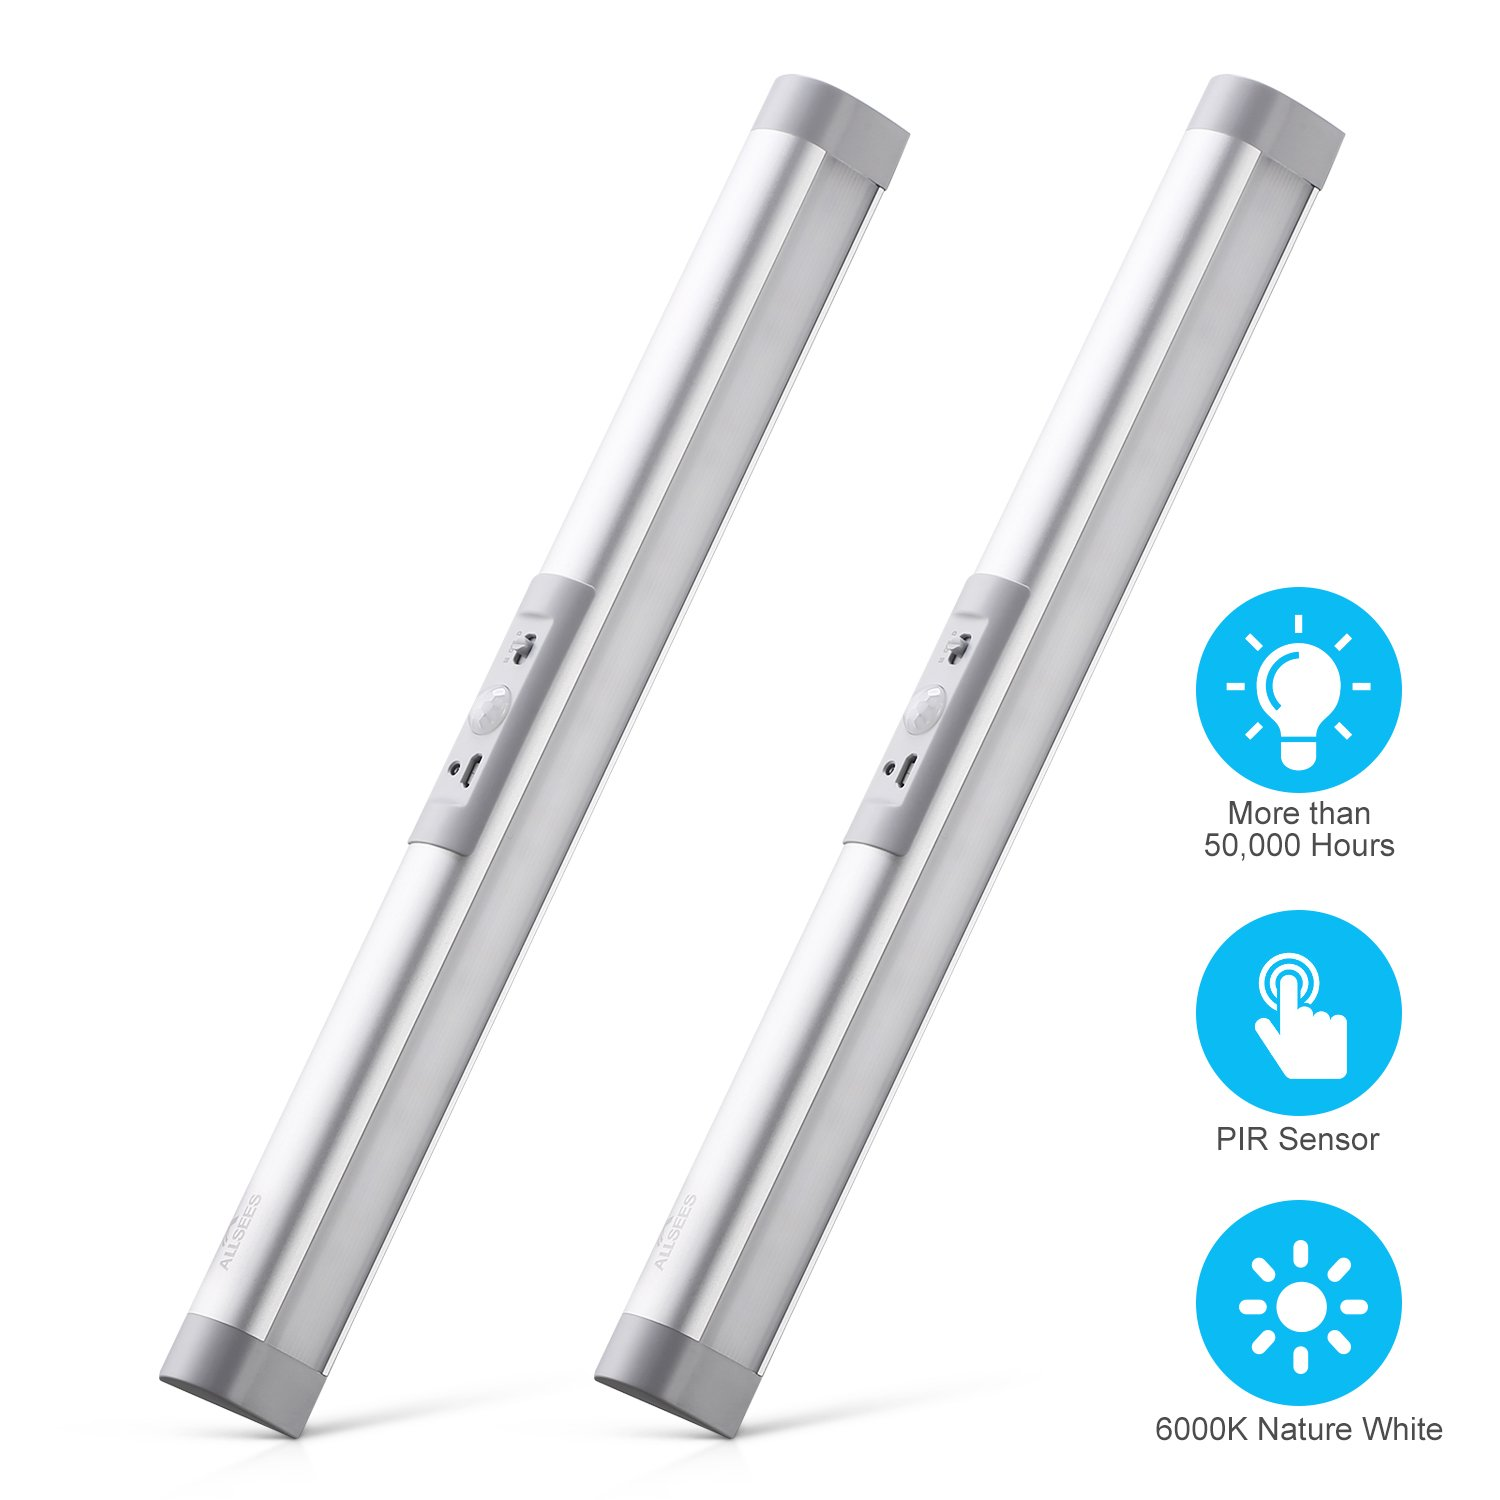 LED Under Cabinet Lighting with Motion Sensor, Wireless Rechargeable Battery Operated, 14 inches Long with Germany OSRAM Eye-Protection LED Bulbs,Designed for Closet, Cabinet(2PACK)